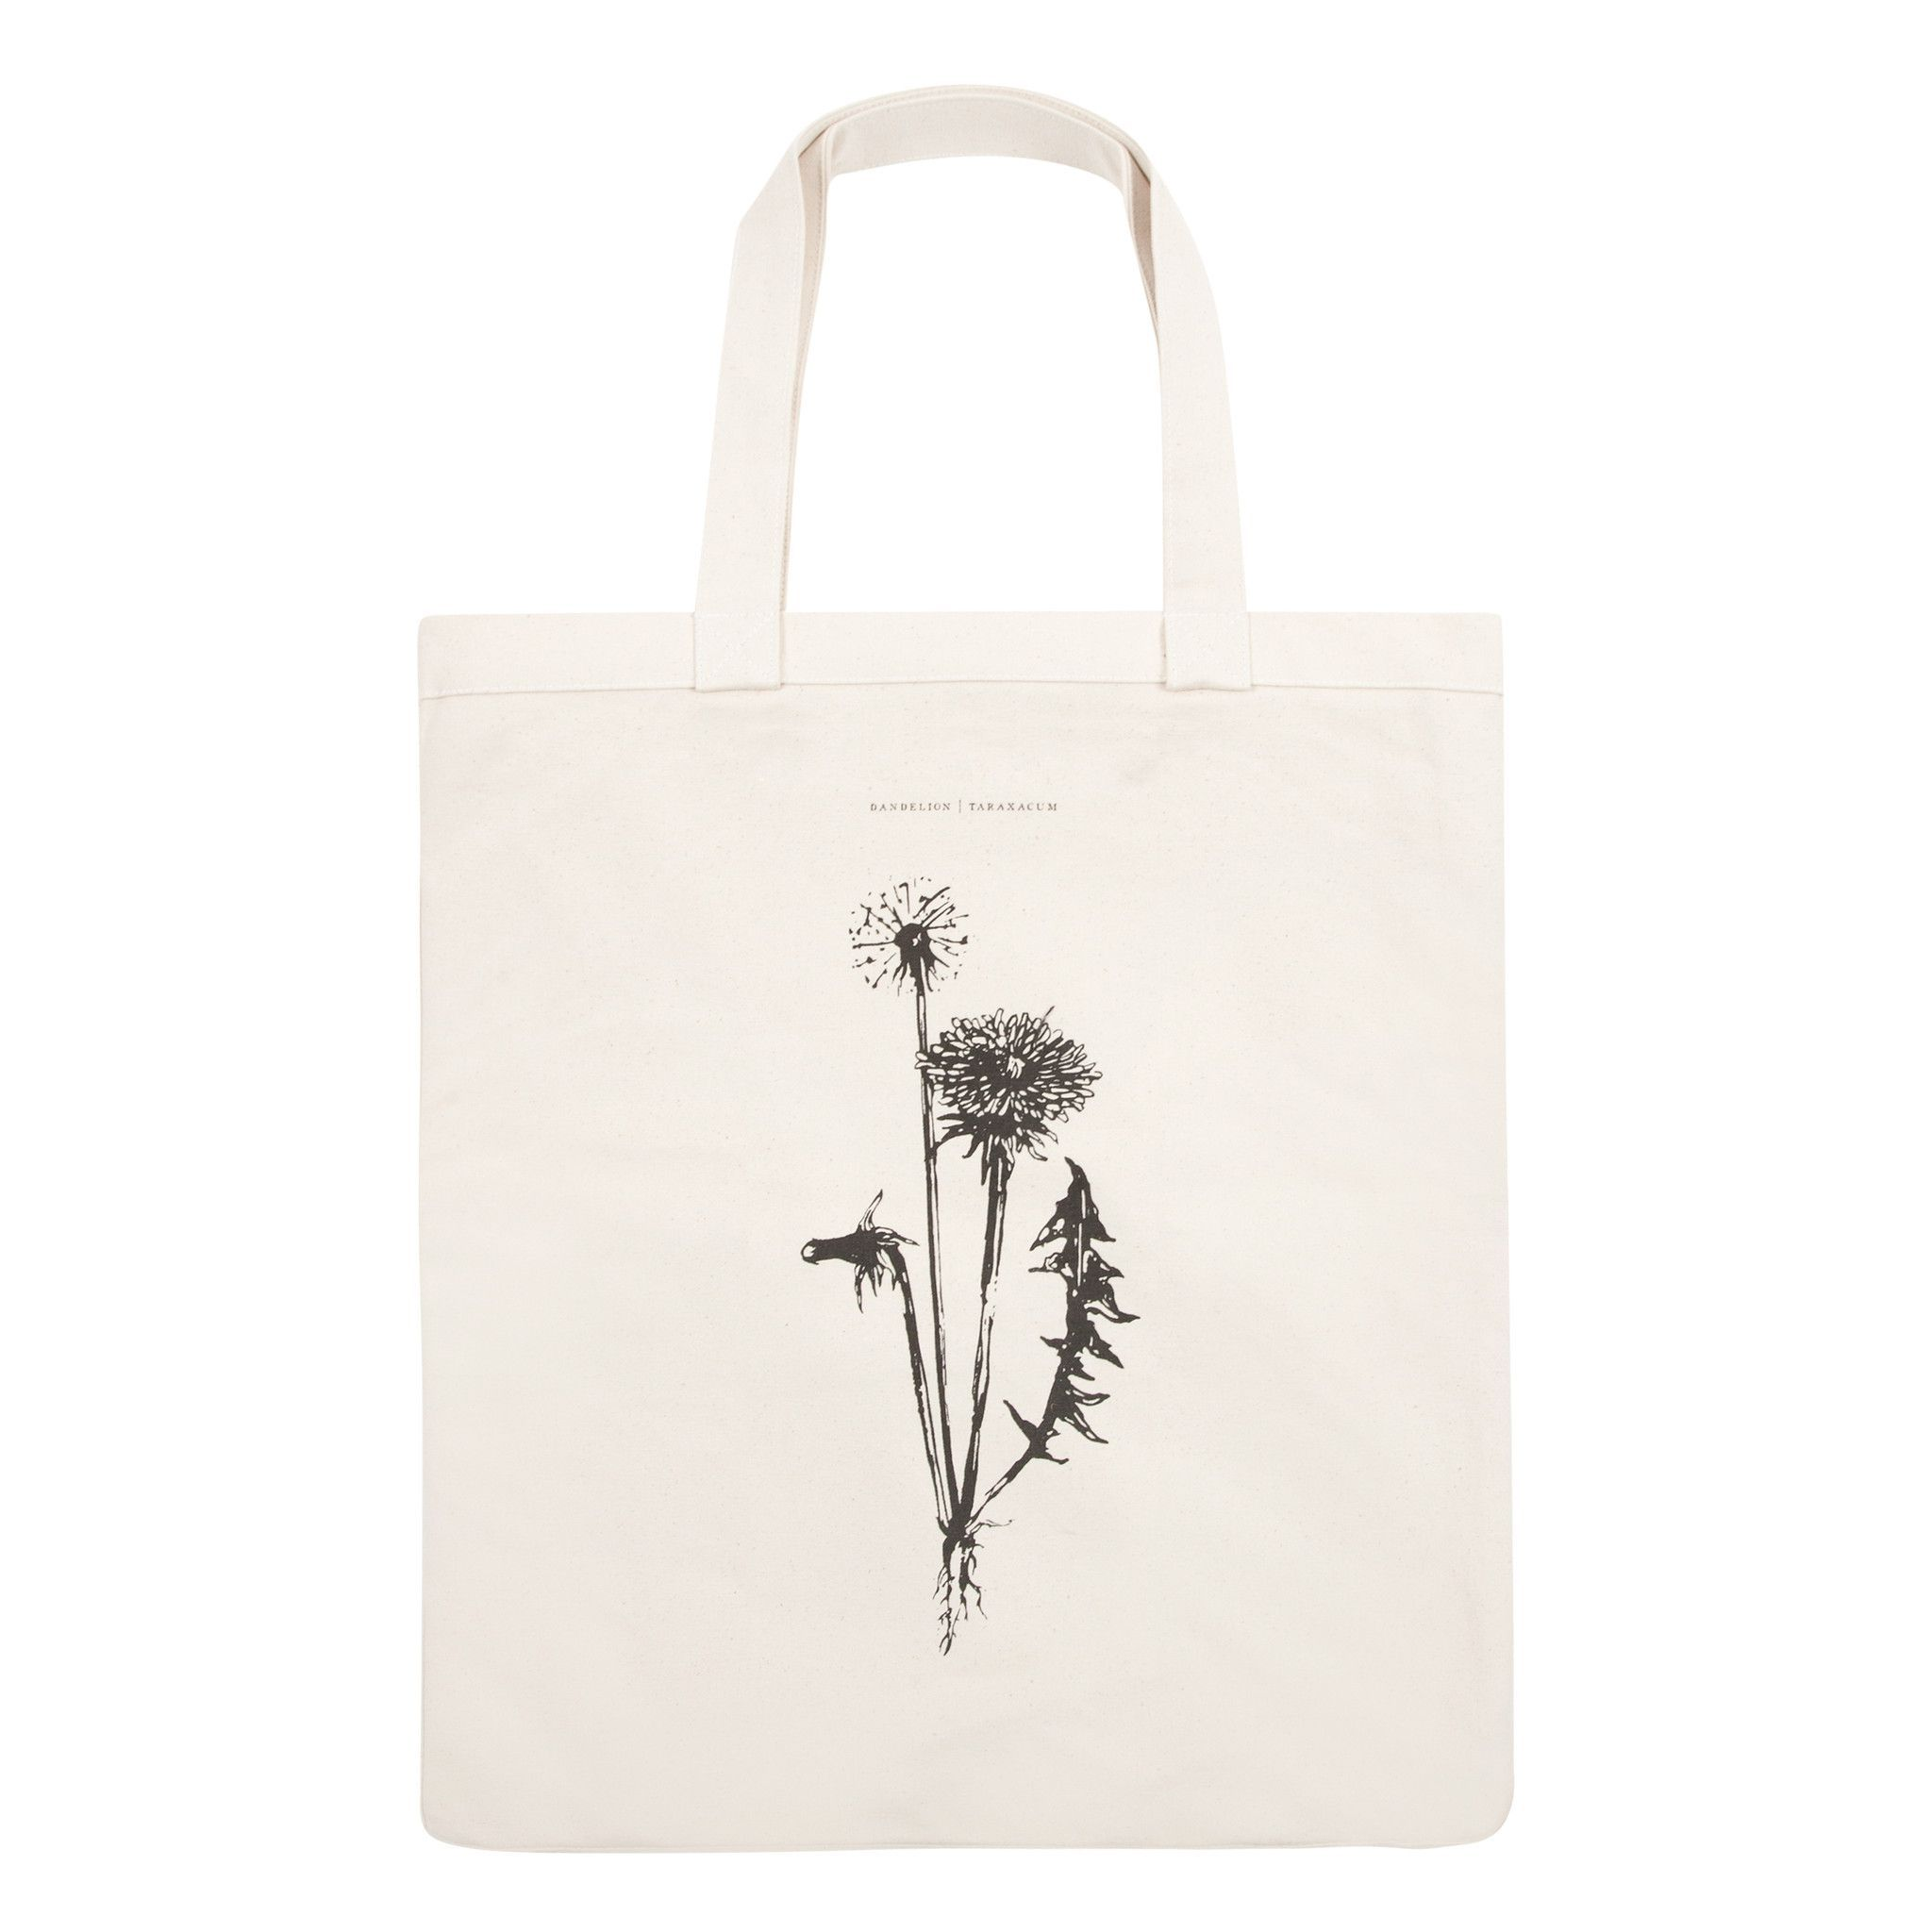 Dandelion Picnic Tote design by Sir/Madam | BURKE DECOR